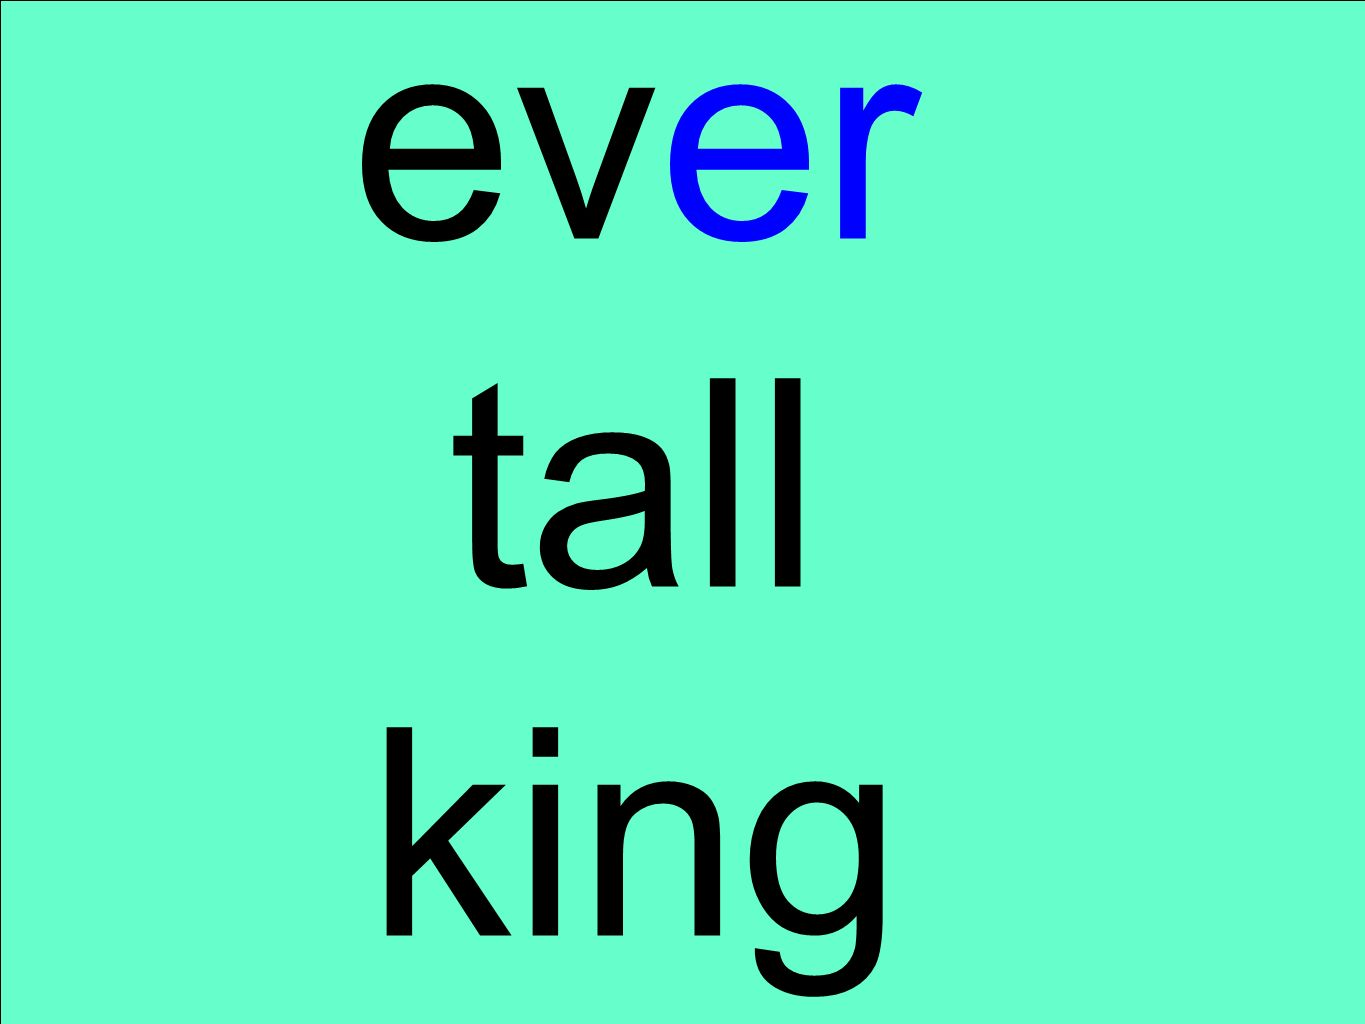 ever tall king